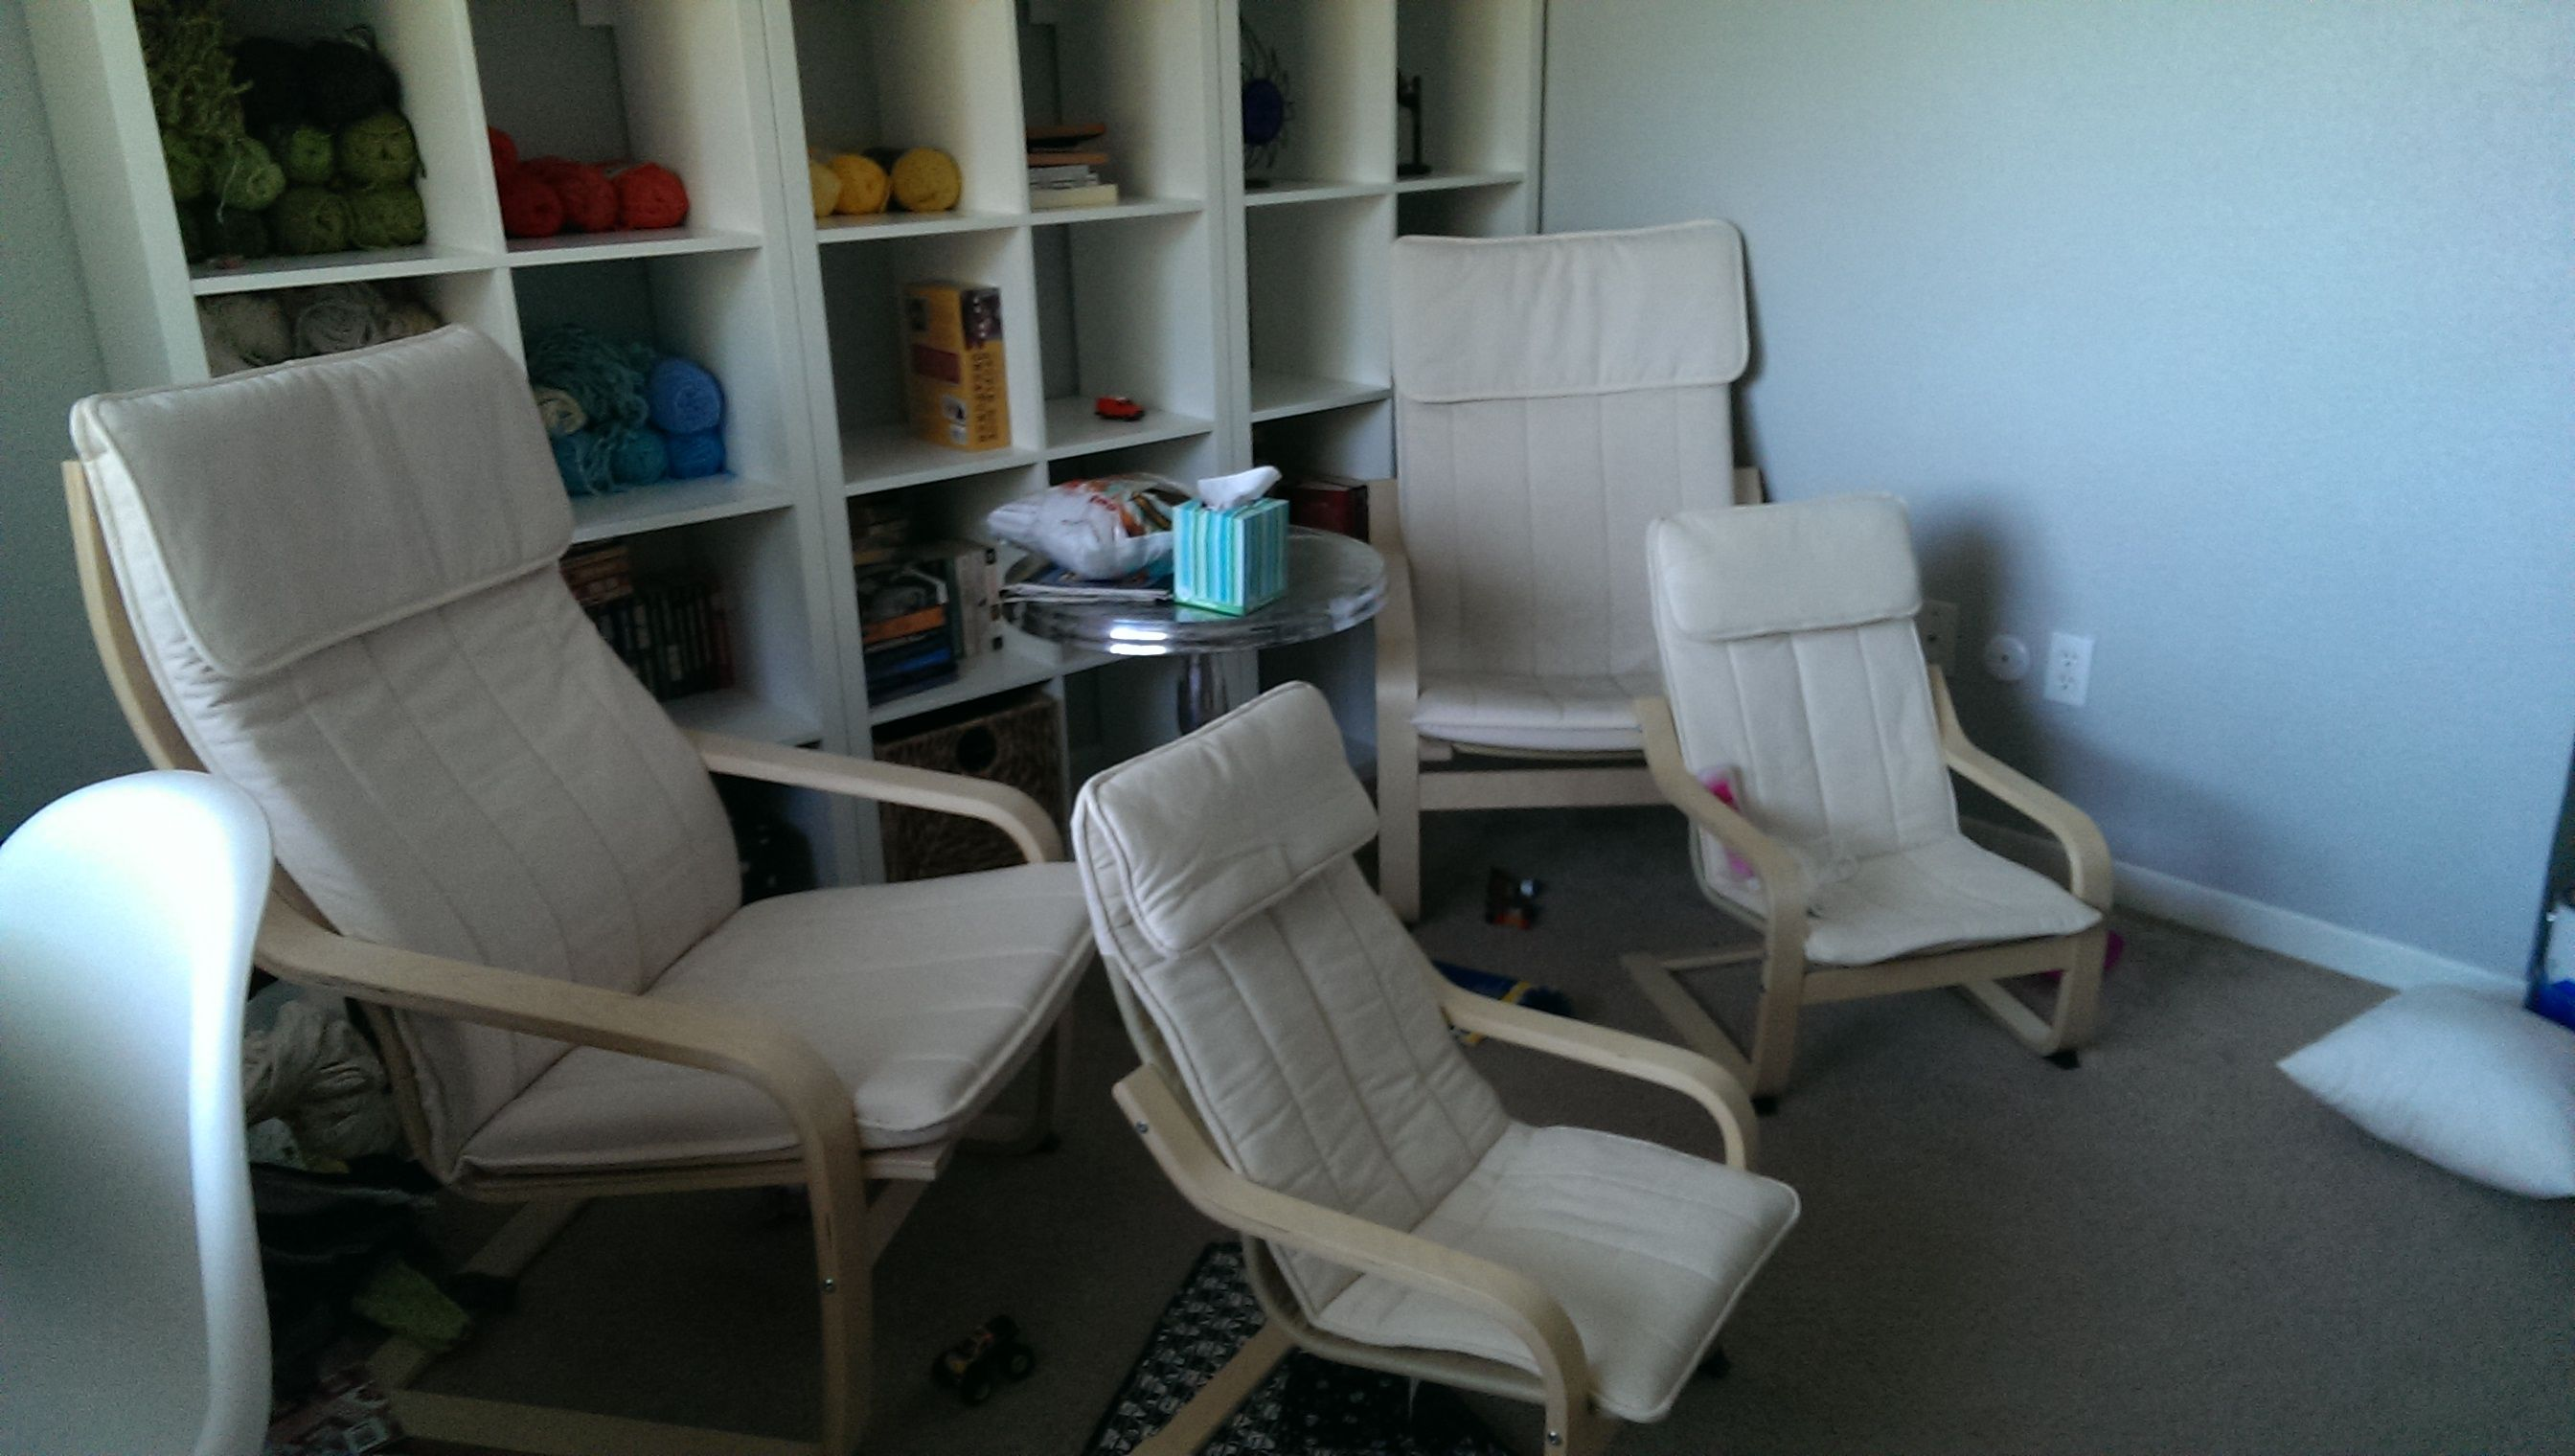 Poang Chairs from Ikea - Crafty husband suggested dying them from white (a pre-kid purchase) to a blue or green for the new house.